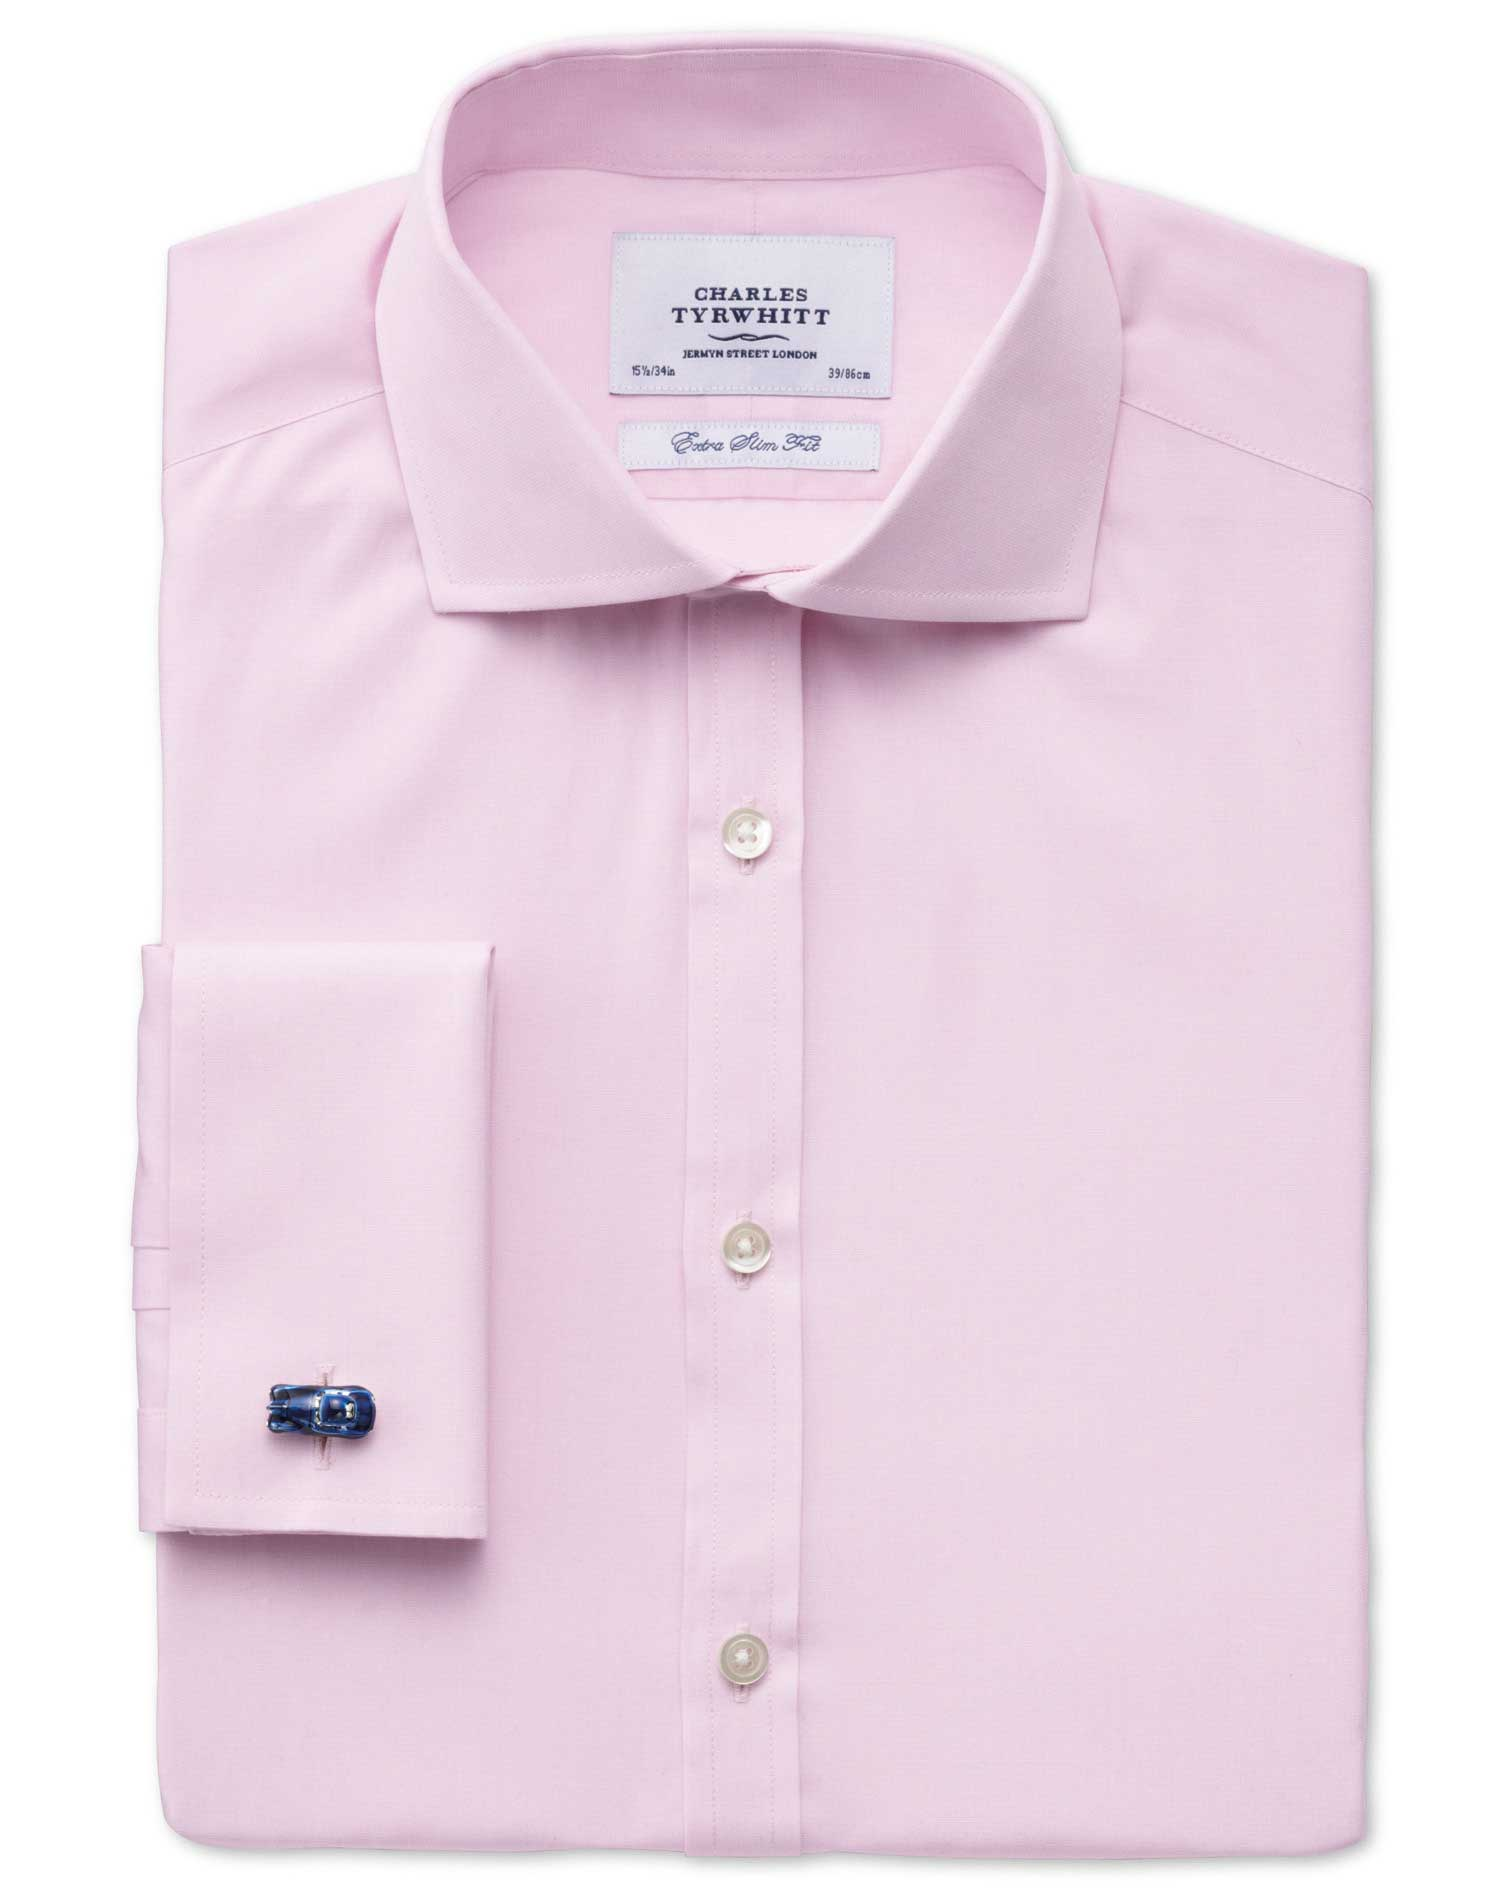 Extra Slim Fit Cutaway Collar End-On-End Pink Cotton Formal Shirt Single Cuff Size 16.5/33 by Charle